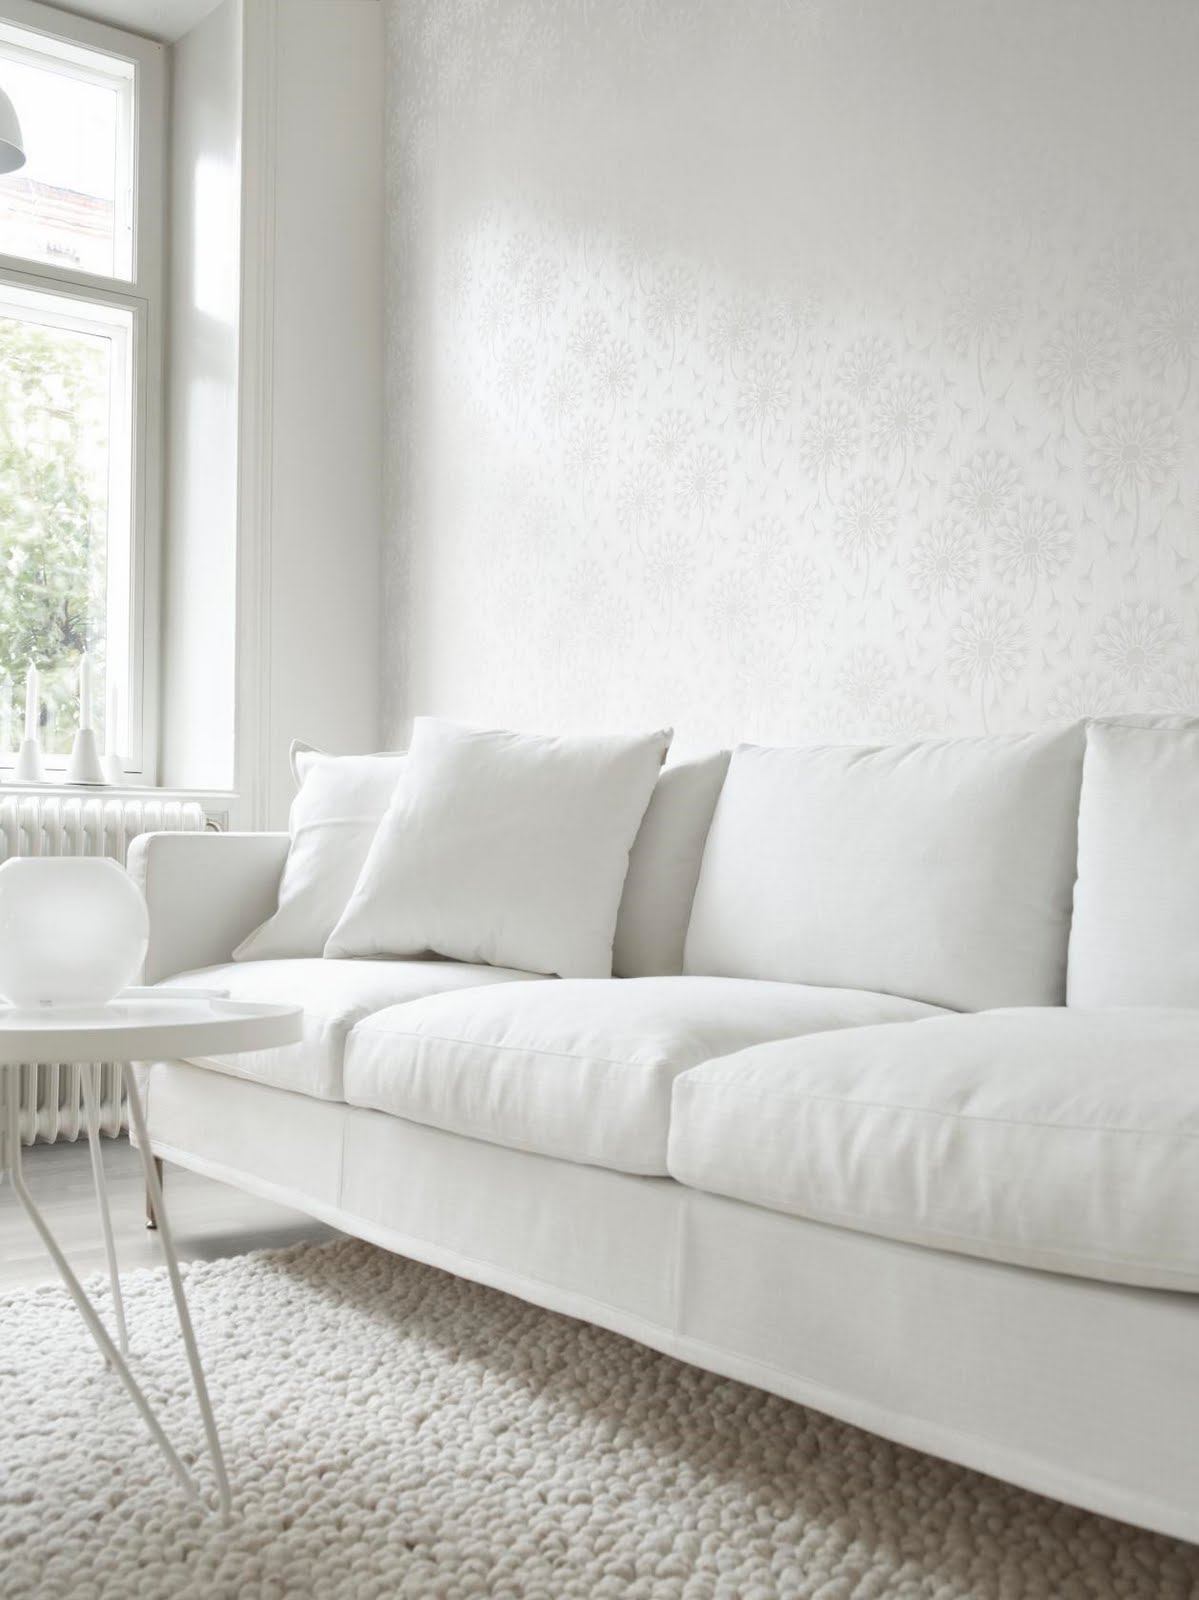 Design Shimmer White Walls